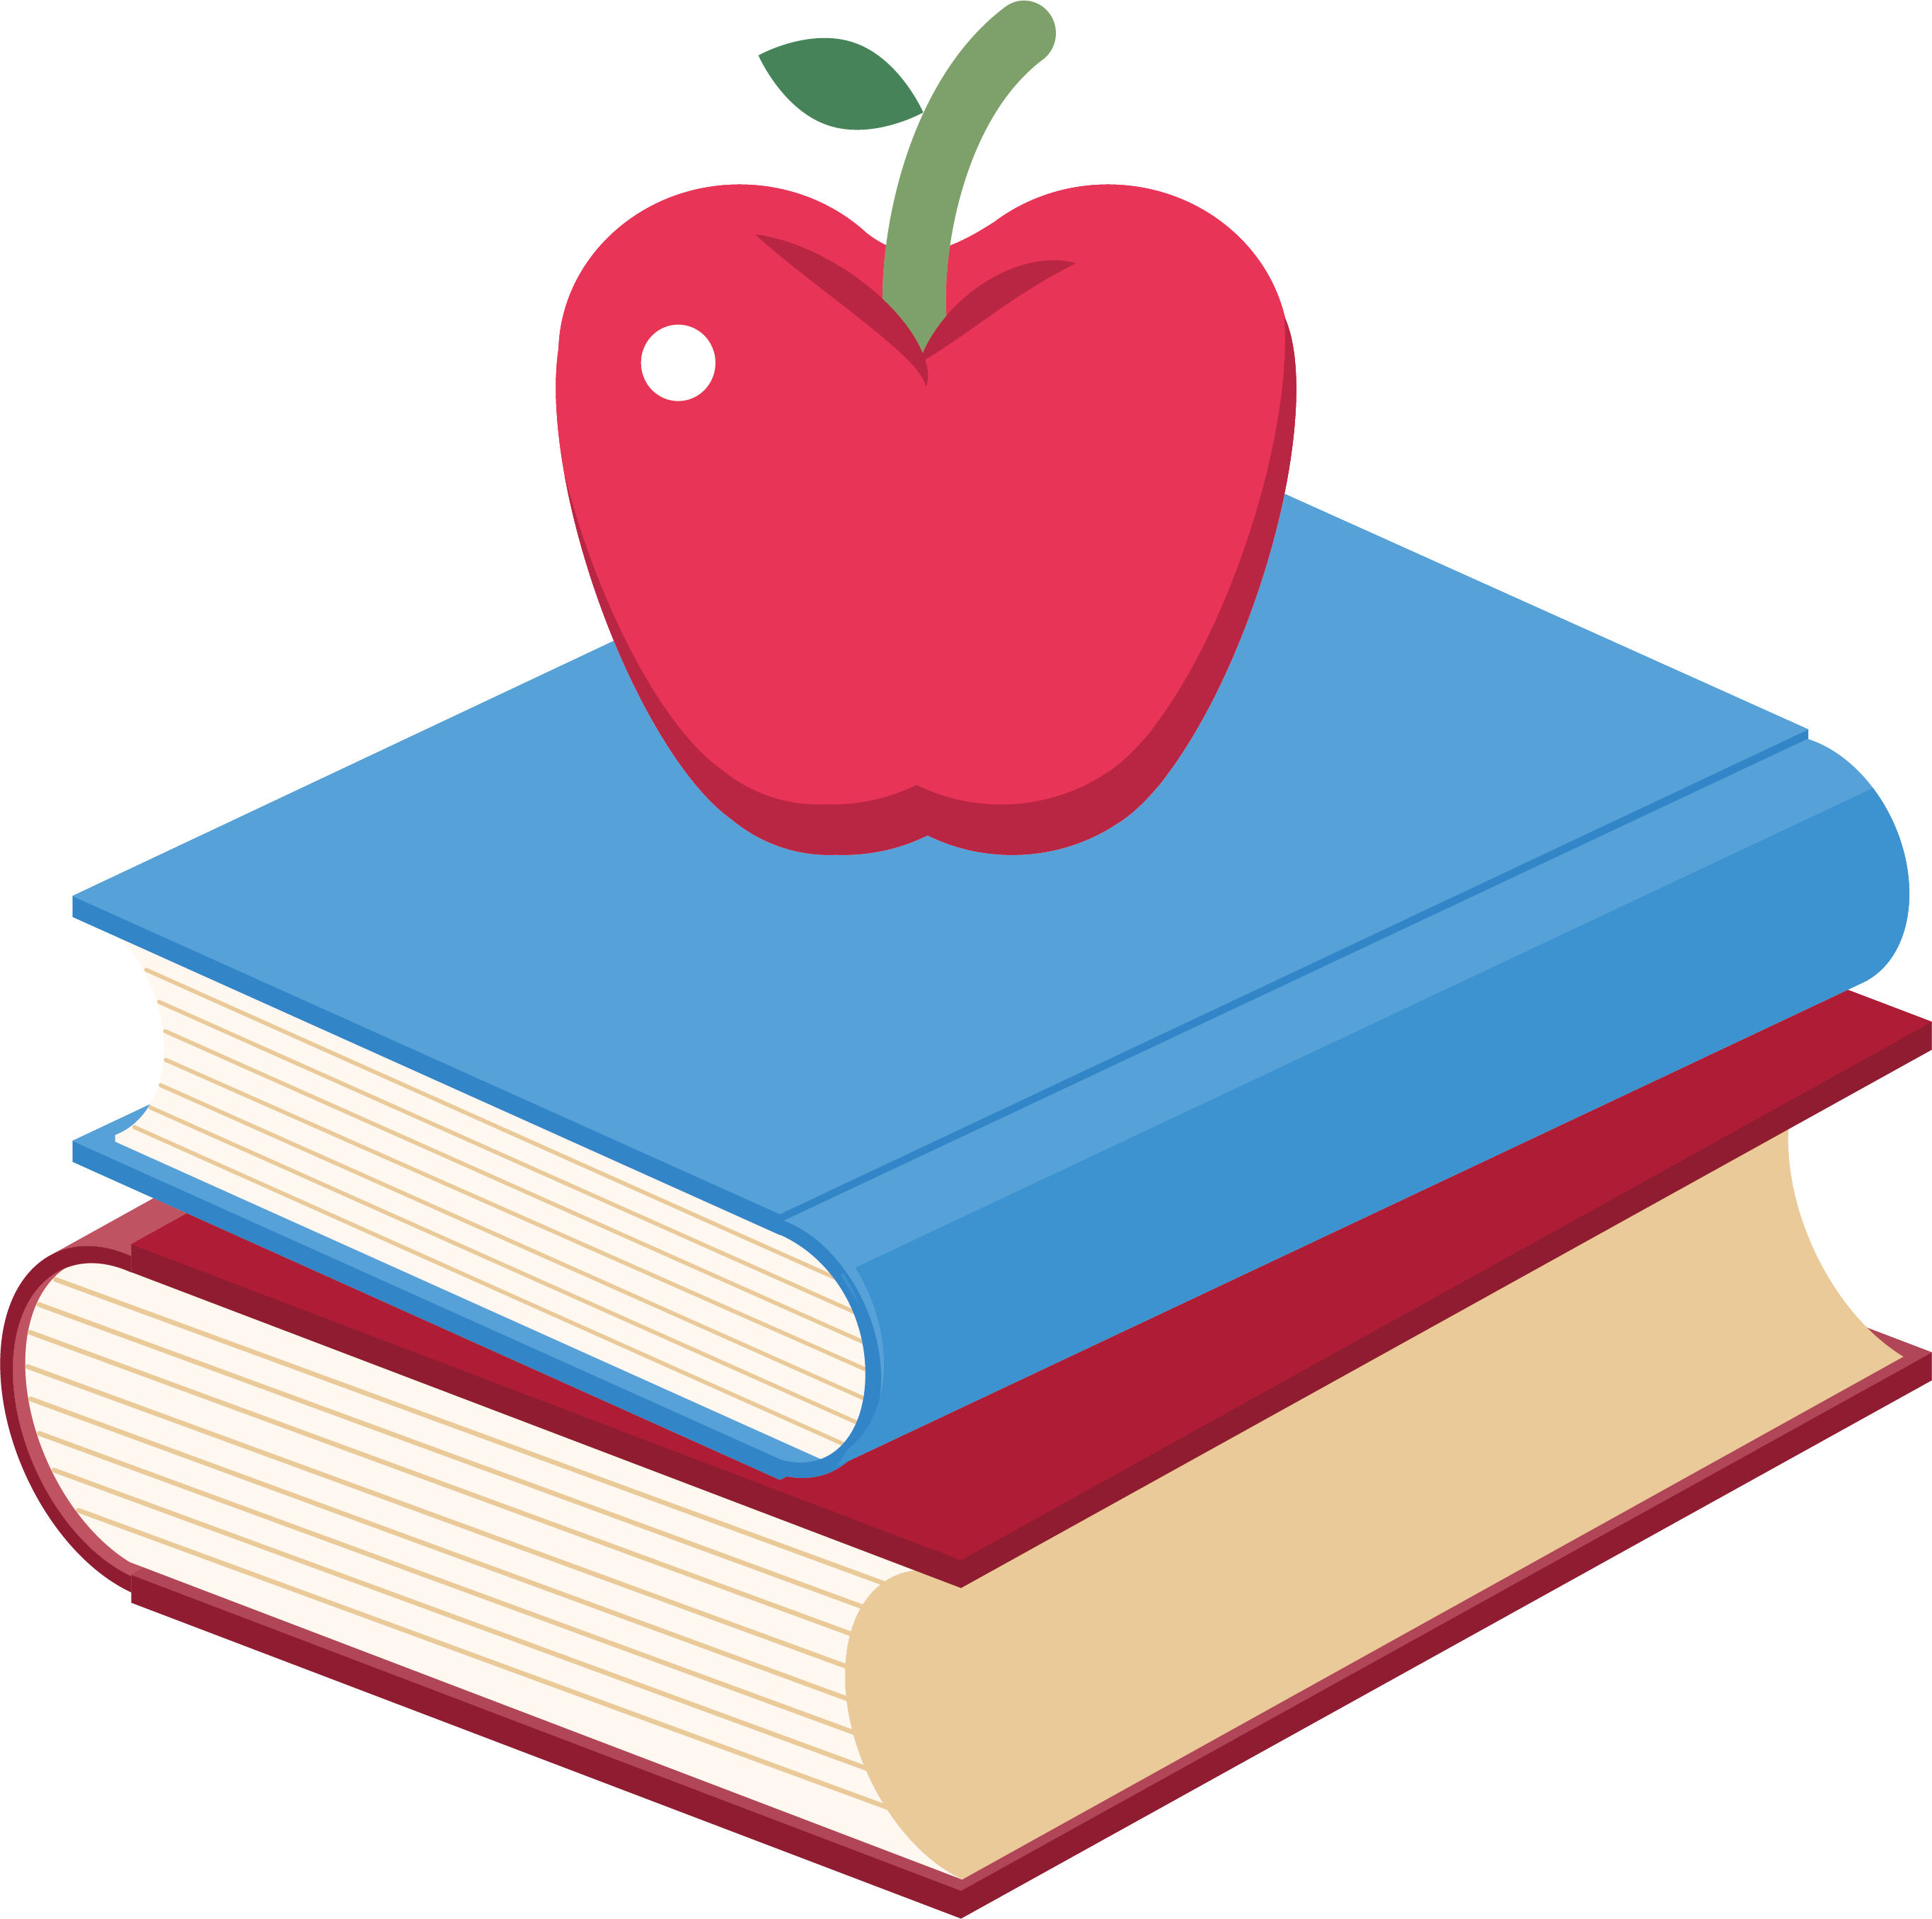 banner royalty free Book clip art two. Books and apple clipart